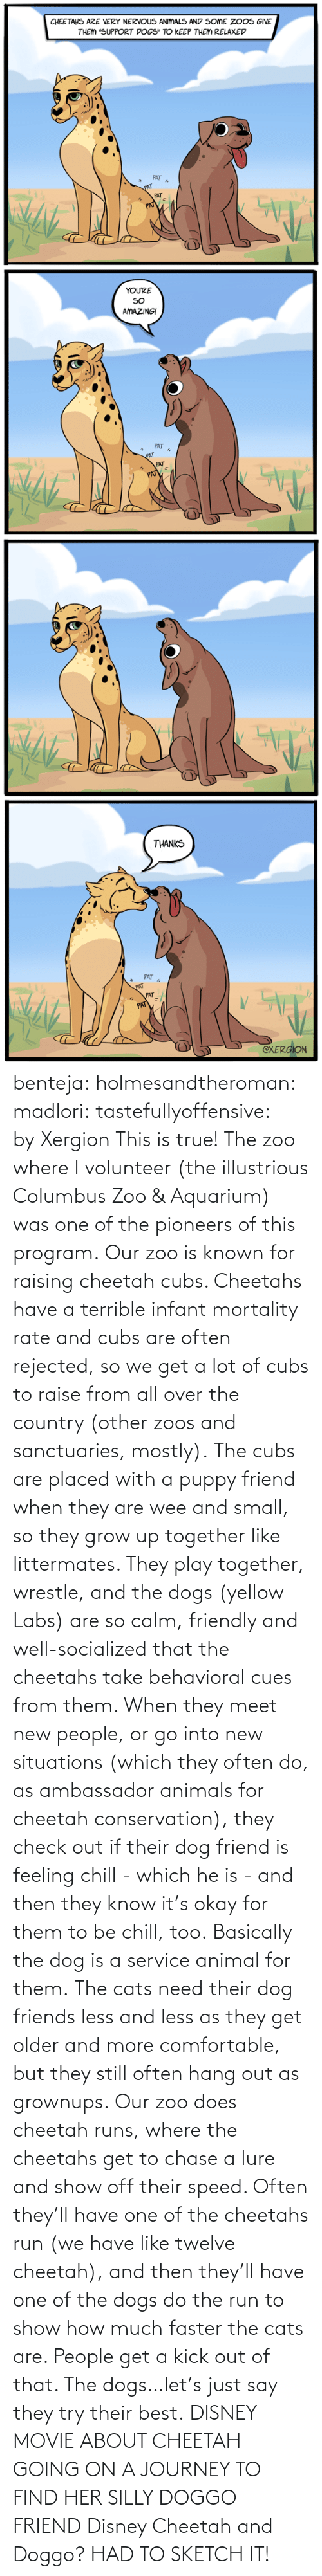 comfortable: benteja:  holmesandtheroman:  madlori:  tastefullyoffensive: by Xergion This is true! The zoo where I volunteer (the illustrious Columbus Zoo & Aquarium) was one of the pioneers of this program. Our zoo is known for raising cheetah cubs. Cheetahs have a terrible infant mortality rate and cubs are often rejected, so we get a lot of cubs to raise from all over the country (other zoos and sanctuaries, mostly). The cubs are placed with a puppy friend when they are wee and small, so they grow up together like littermates. They play together, wrestle, and the dogs (yellow Labs) are so calm, friendly and well-socialized that the cheetahs take behavioral cues from them. When they meet new people, or go into new situations (which they often do, as ambassador animals for cheetah conservation), they check out if their dog friend is feeling chill - which he is - and then they know it's okay for them to be chill, too. Basically the dog is a service animal for them. The cats need their dog friends less and less as they get older and more comfortable, but they still often hang out as grownups. Our zoo does cheetah runs, where the cheetahs get to chase a lure and show off their speed. Often they'll have one of the cheetahs run (we have like twelve cheetah), and then they'll have one of the dogs do the run to show how much faster the cats are. People get a kick out of that. The dogs…let's just say they try their best.   DISNEY MOVIE ABOUT CHEETAH GOING ON A JOURNEY TO FIND HER SILLY DOGGO FRIEND  Disney Cheetah and Doggo? HAD TO SKETCH IT!